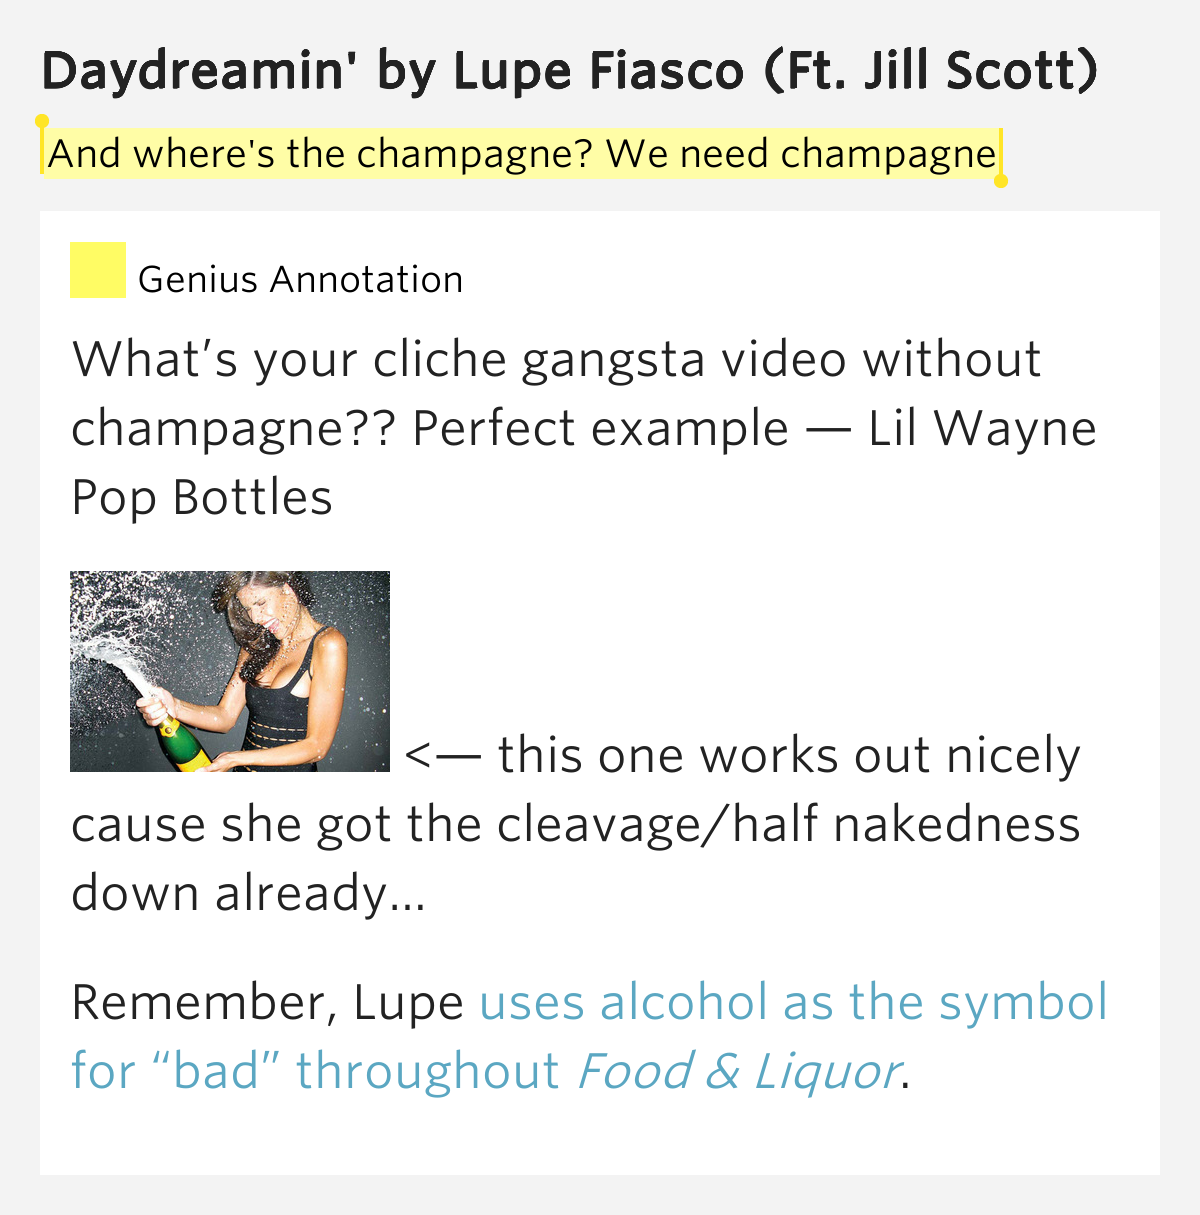 Lupe Fiasco - Daydreamin' - YouTube